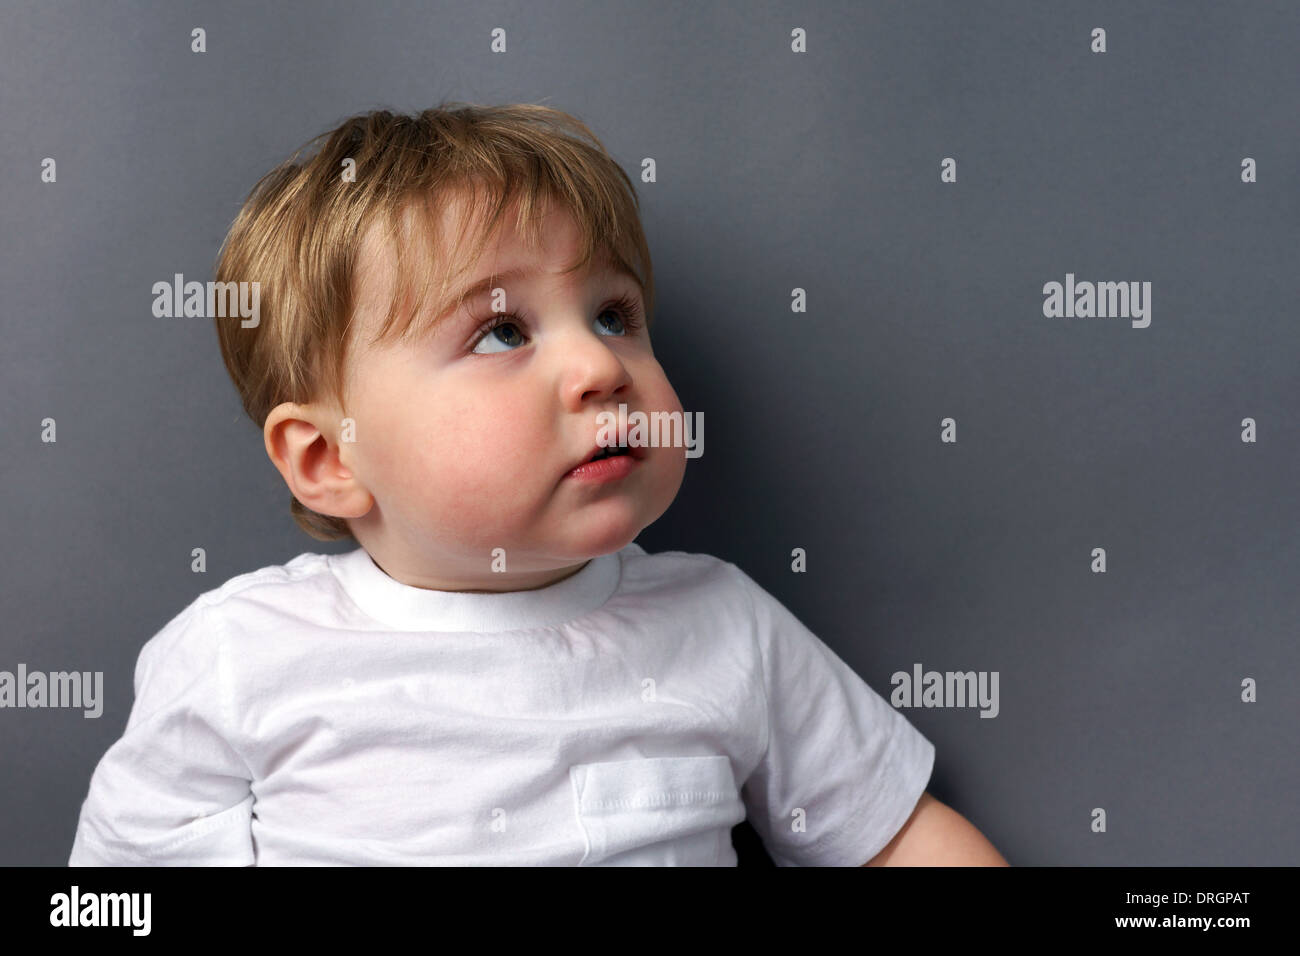 Cute little blond toddler boy looking up, unsure - Stock Image